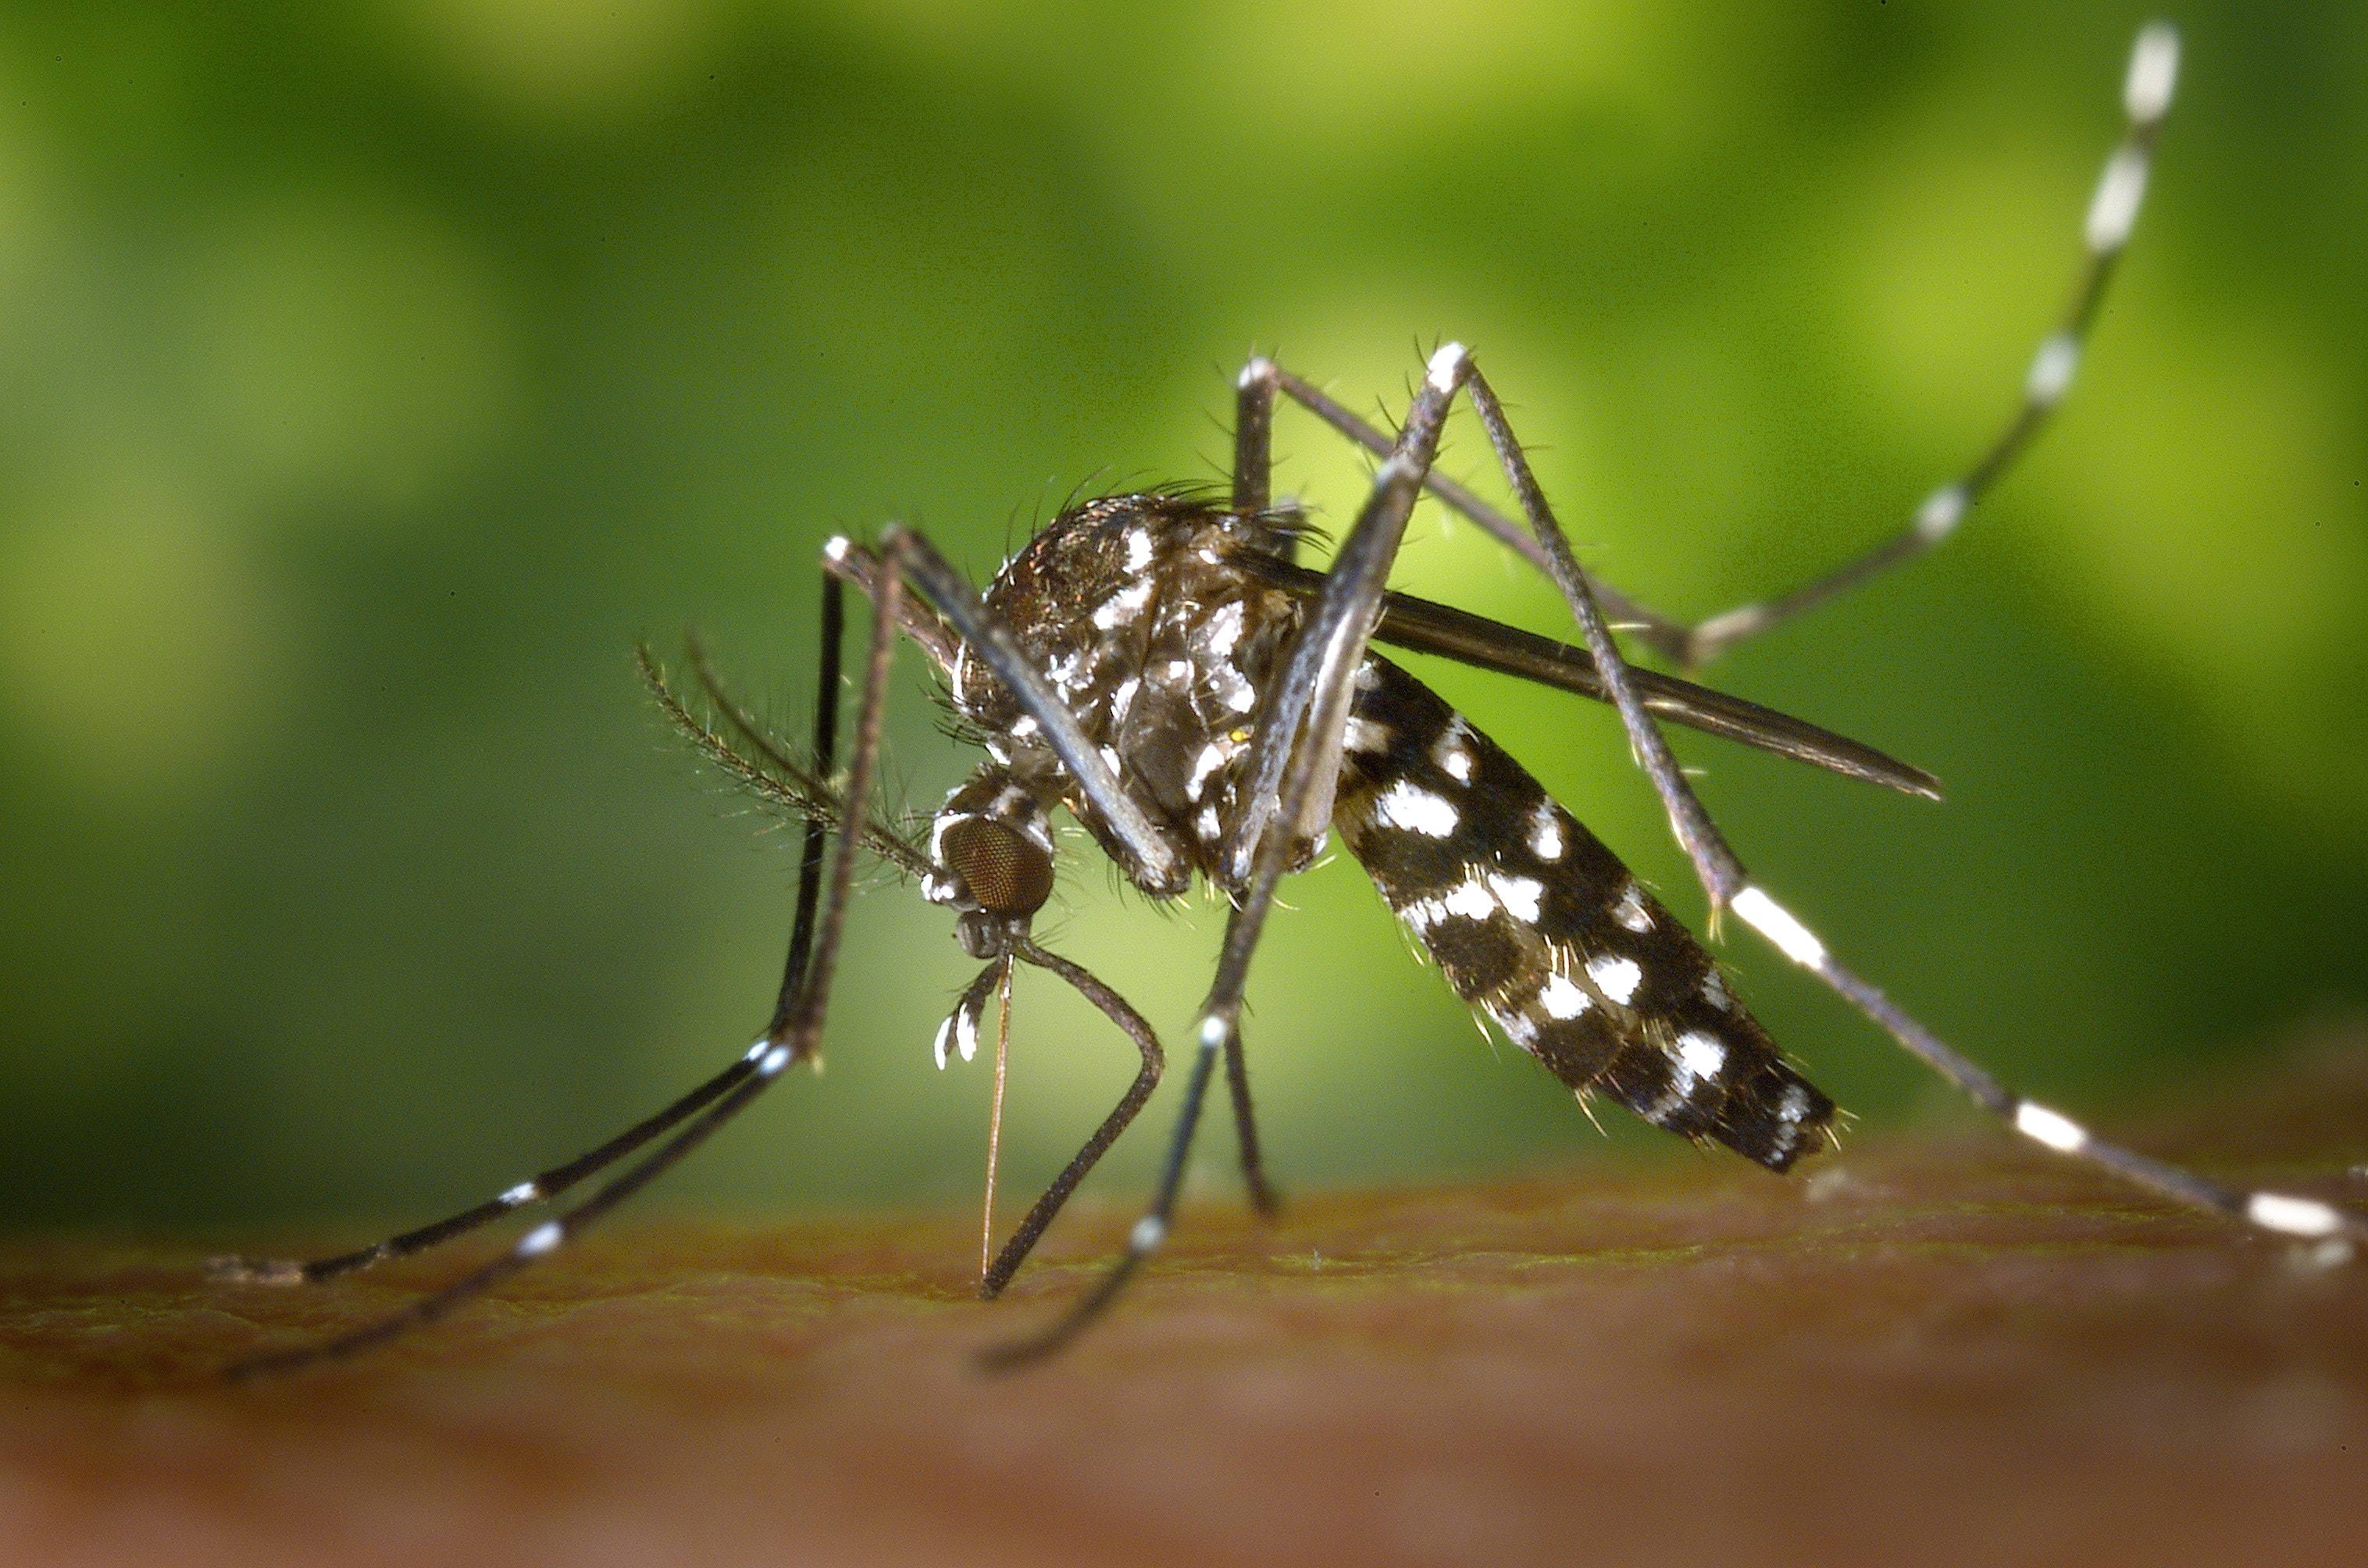 aedes-albopictus-asian-tiger-mosquito-close-up-86722